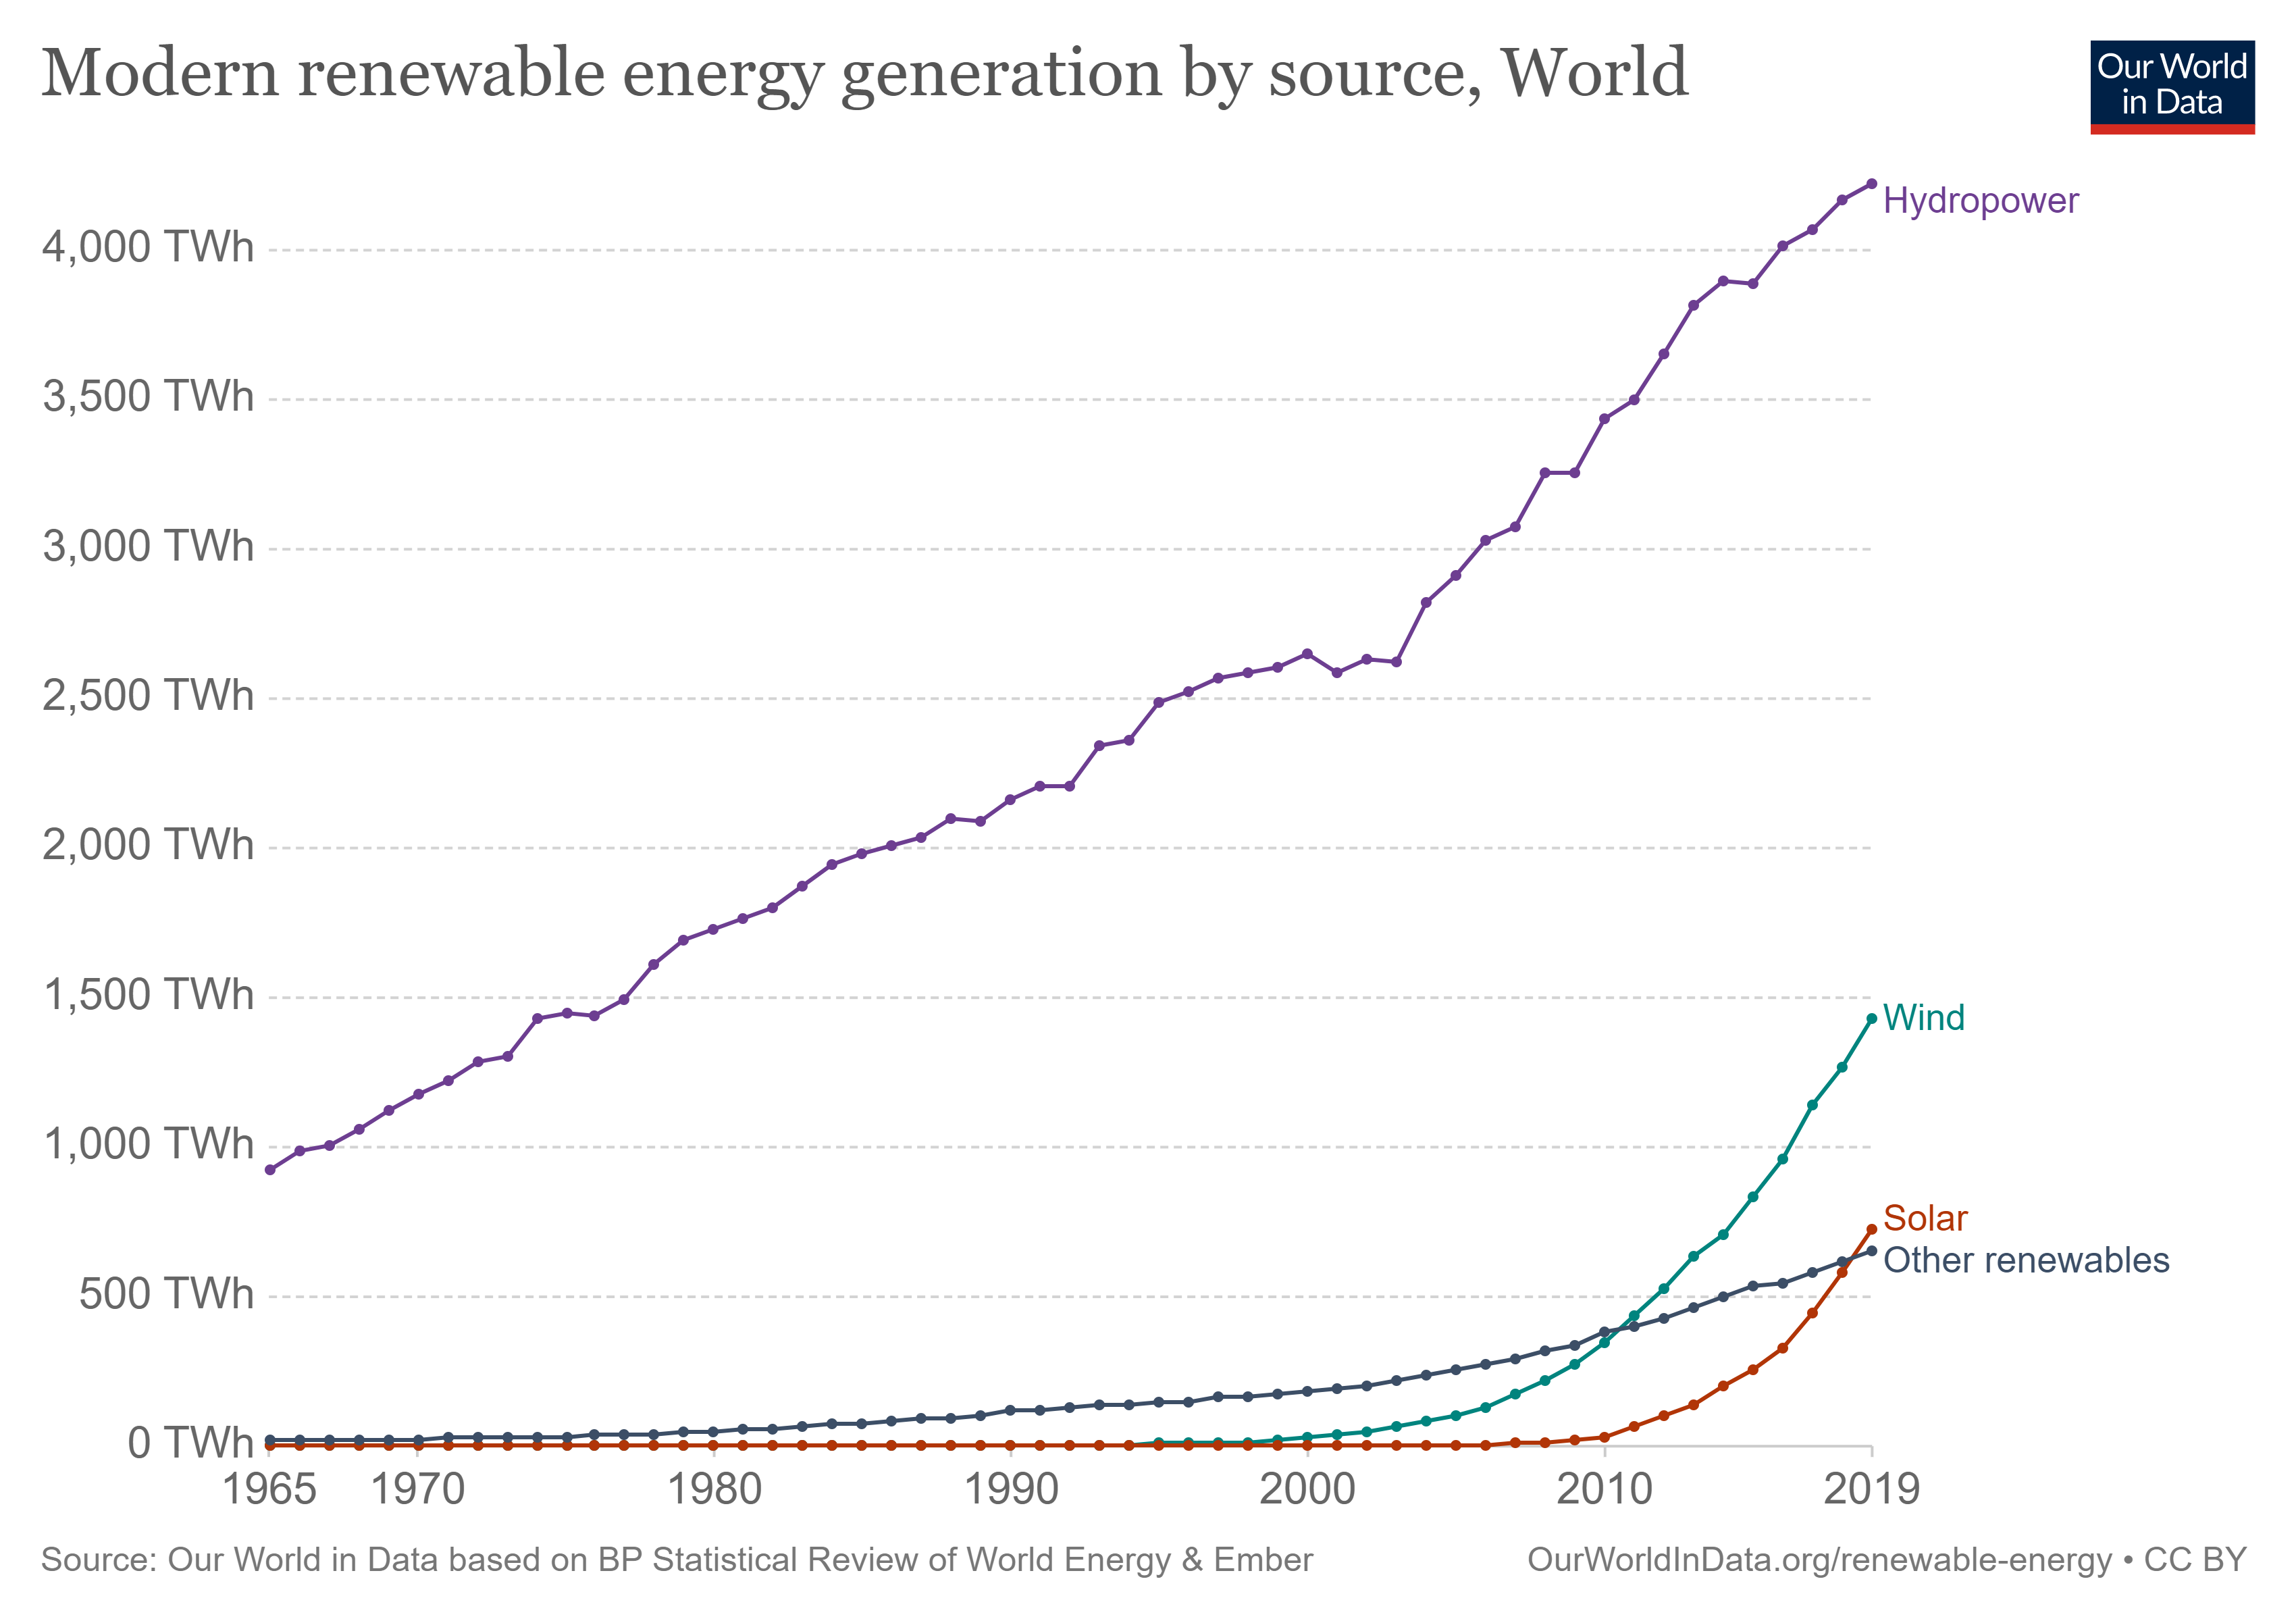 How much of our primary energy comes from renewables?